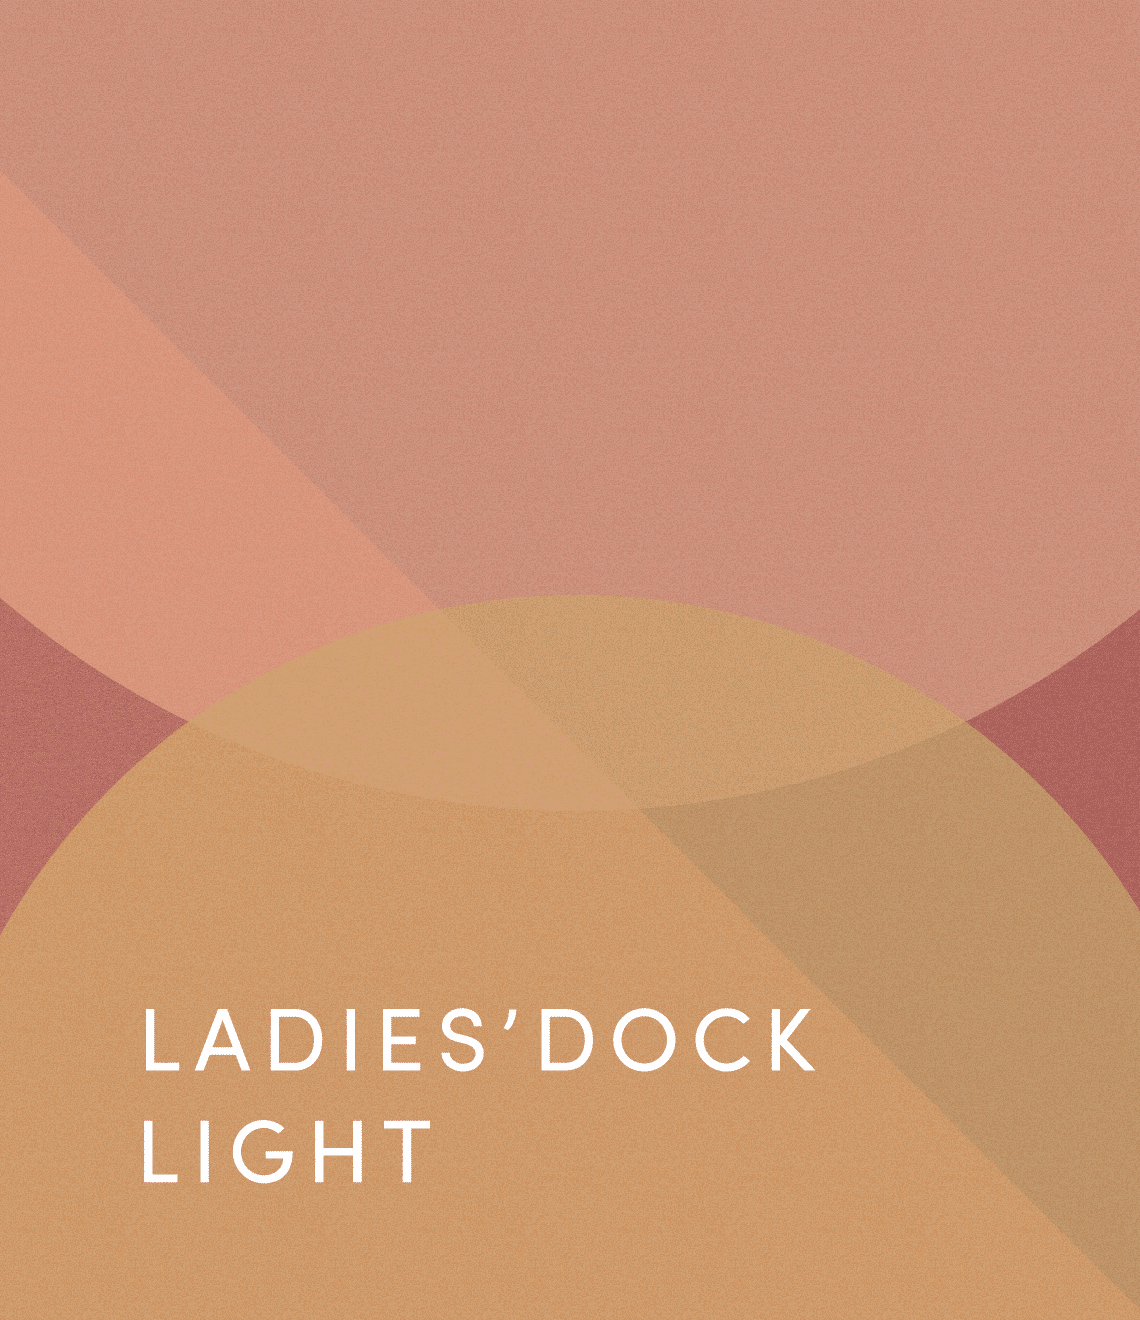 LADY'S DOCK LIGHT